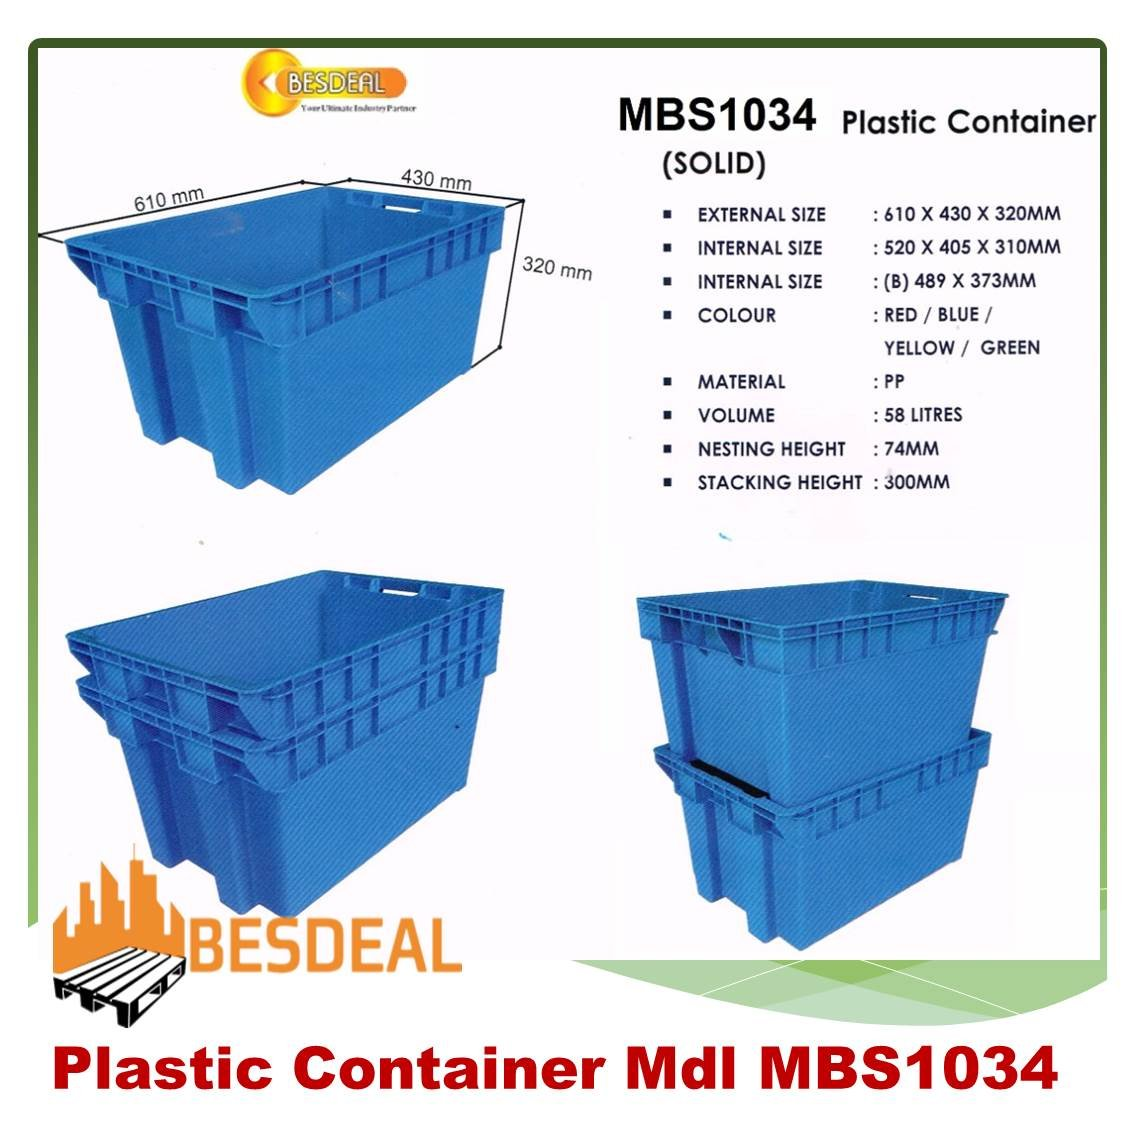 Plastic Container Mdl MBS1034H For Sales Now!!